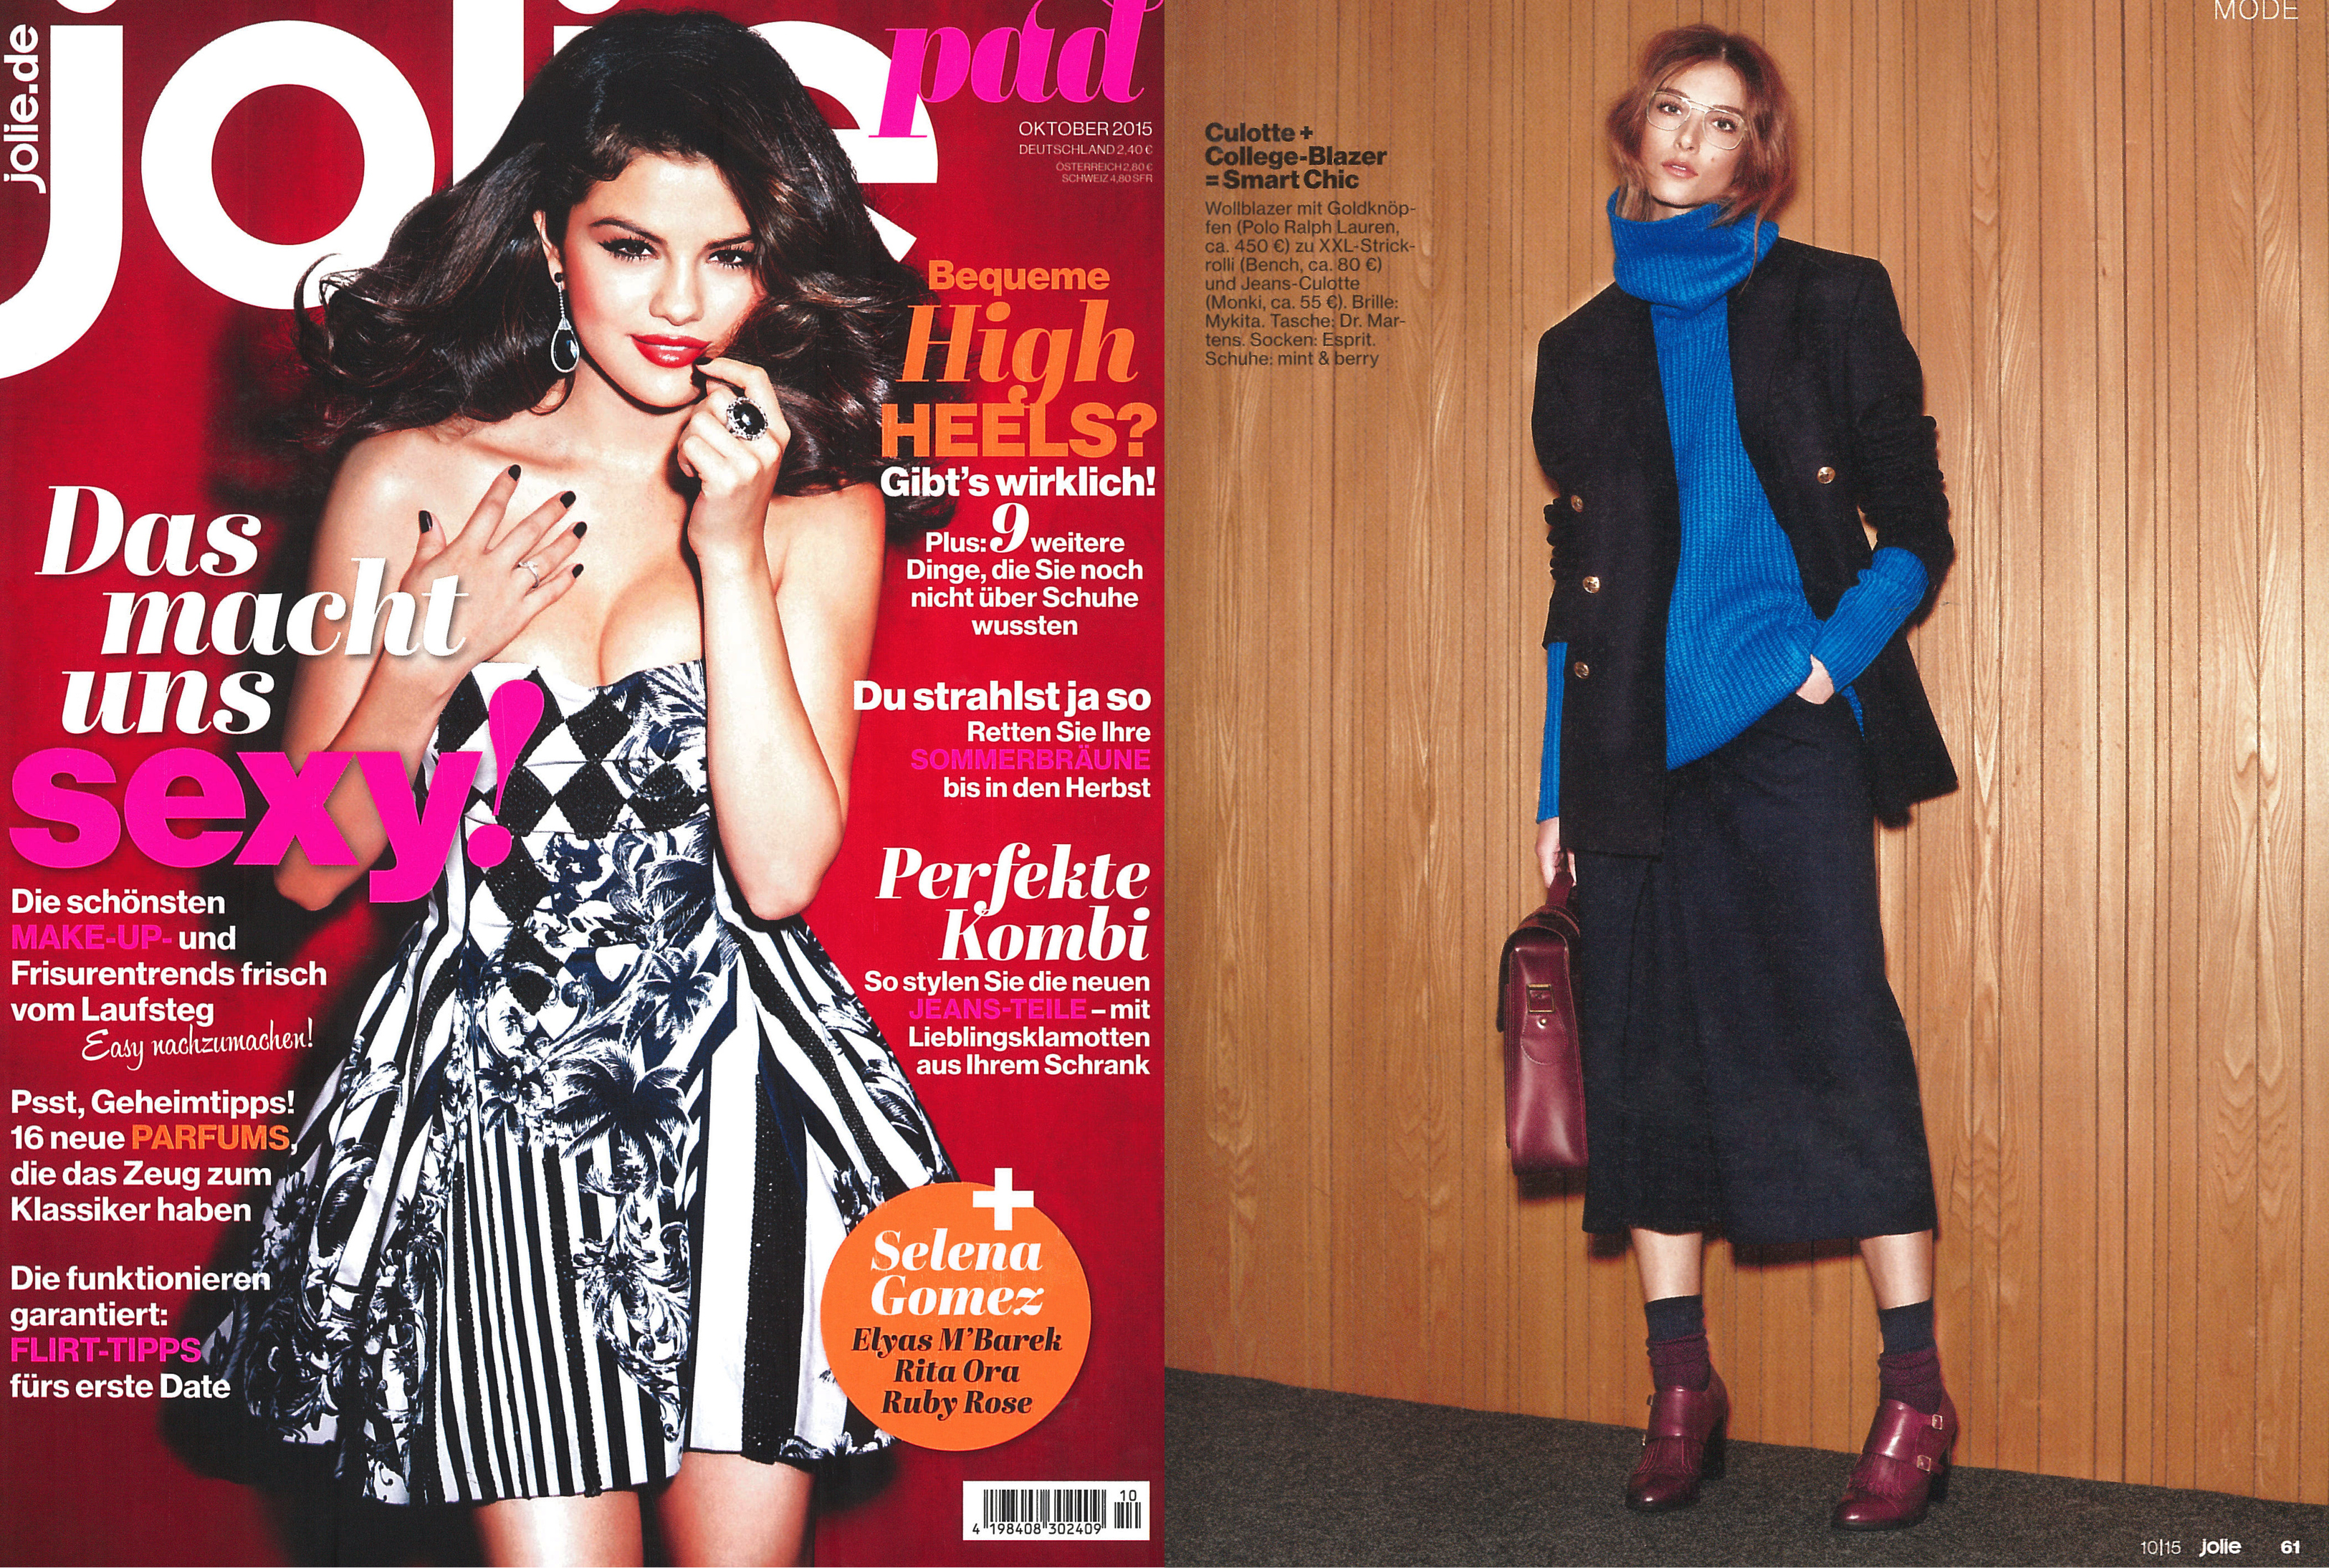 MYKITA LITE sunglasses CLAAS featured in JOLIE Germany